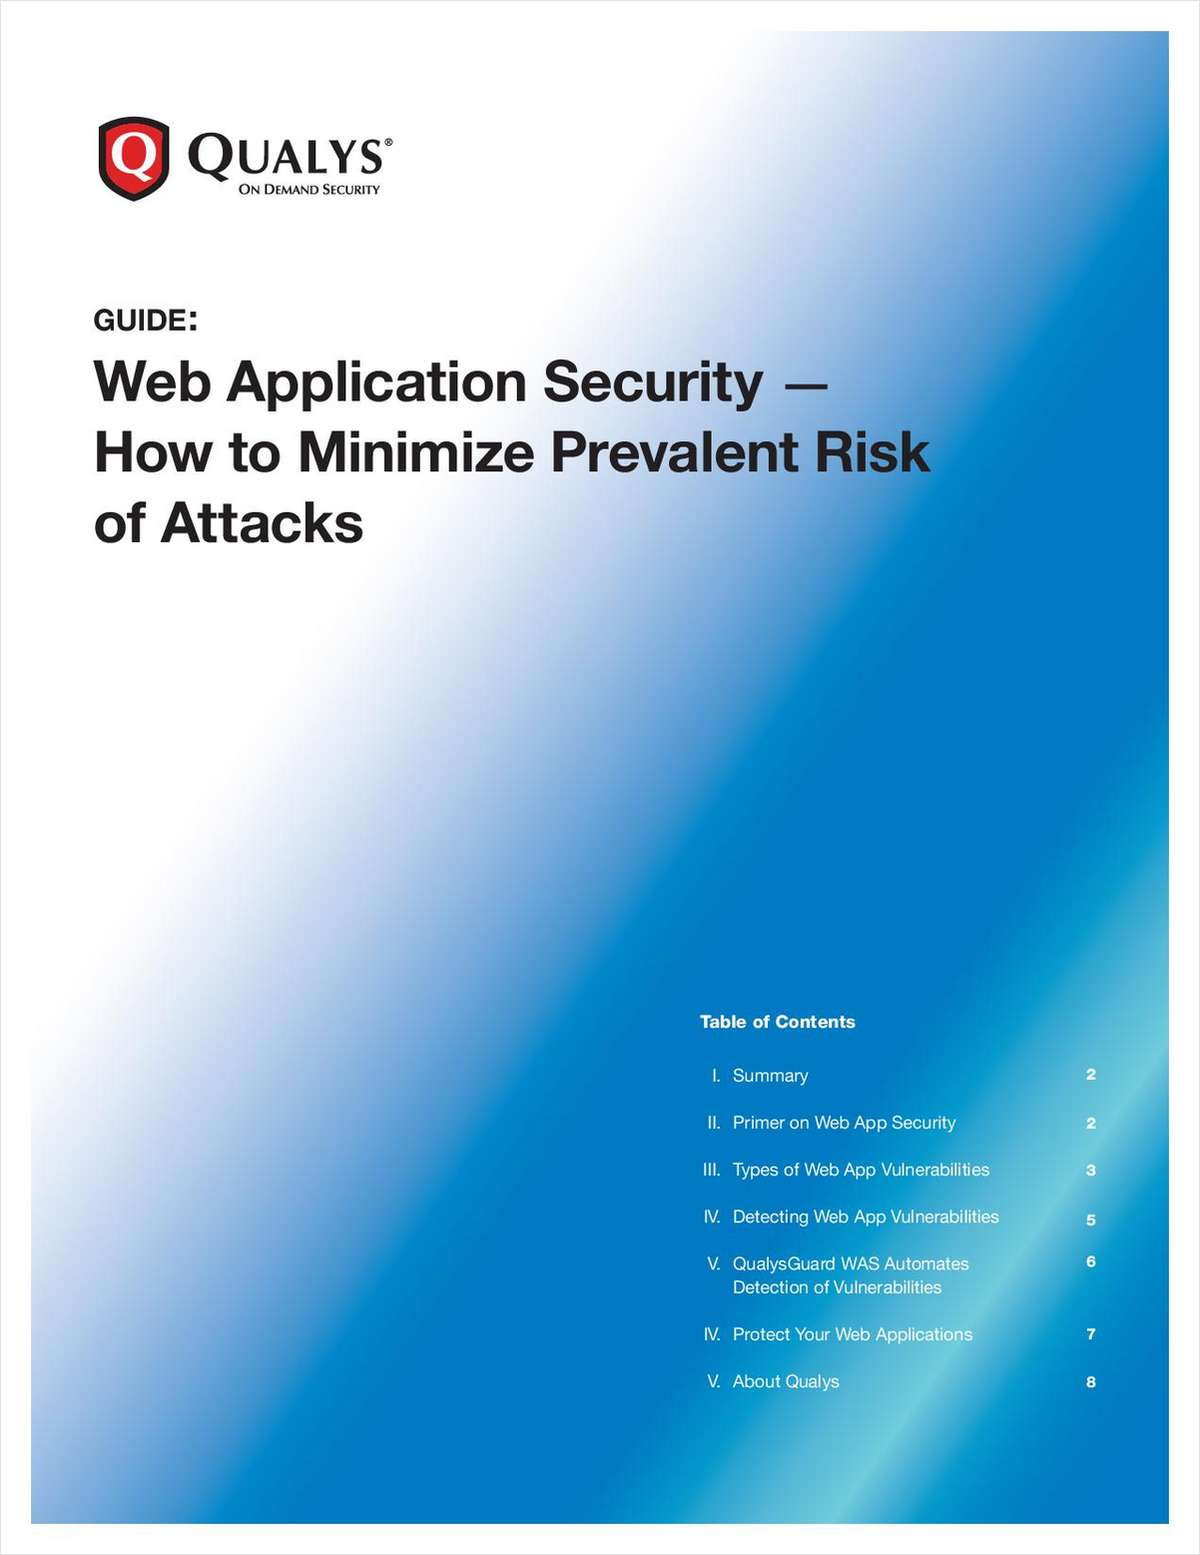 Web Application Security; How to Minimize Prevalent Risk of Attacks